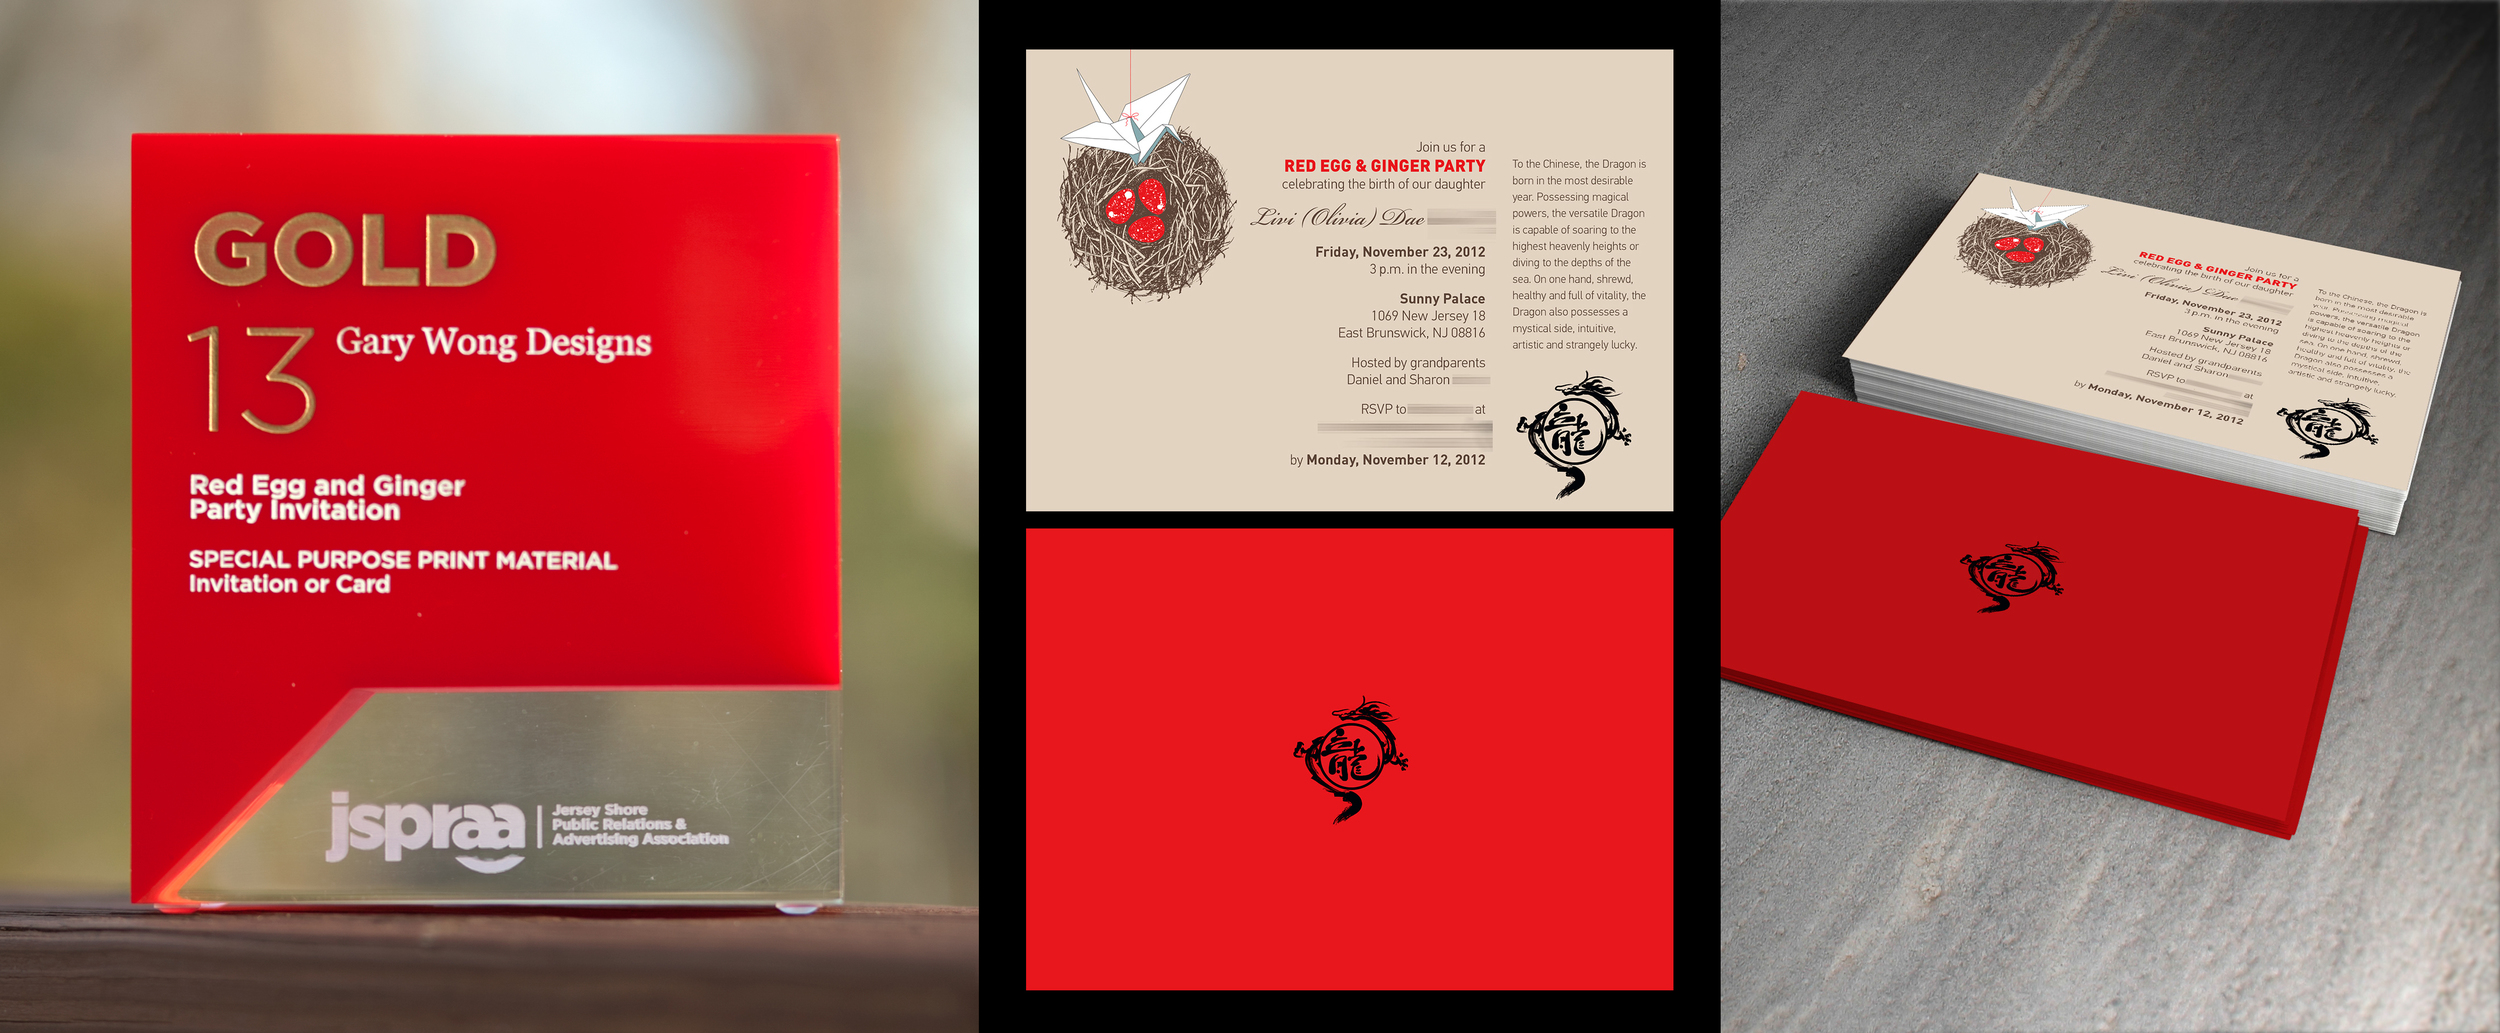 Client: Self, Red Egg + Ginger Party Invitation Category: Special Purpose Print Material, Invitation or Card